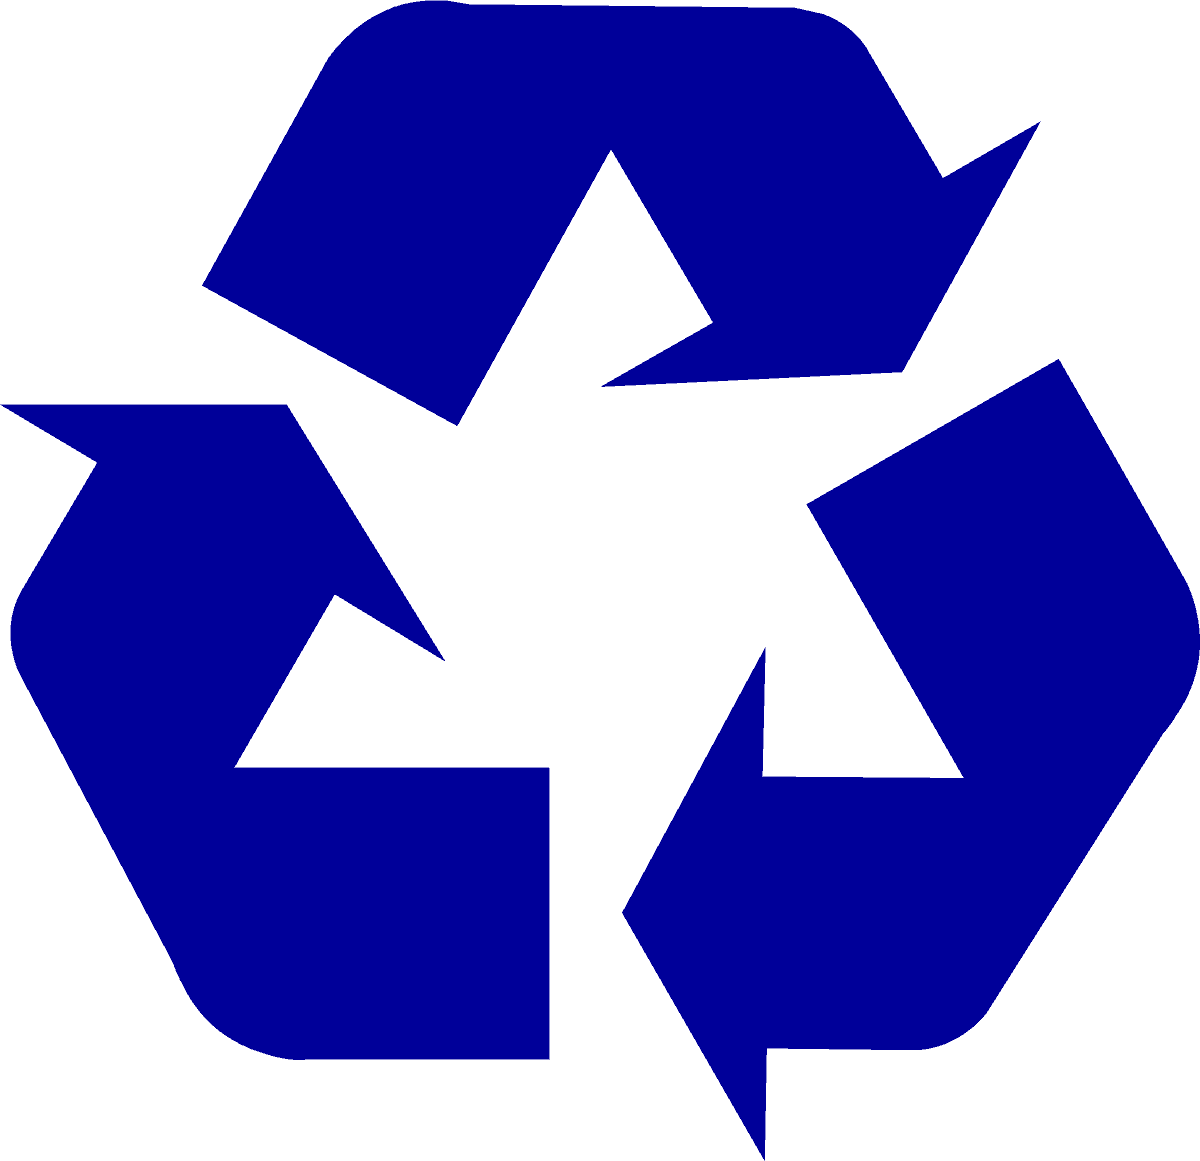 recycling-symbol-icon-solid-dark-blue